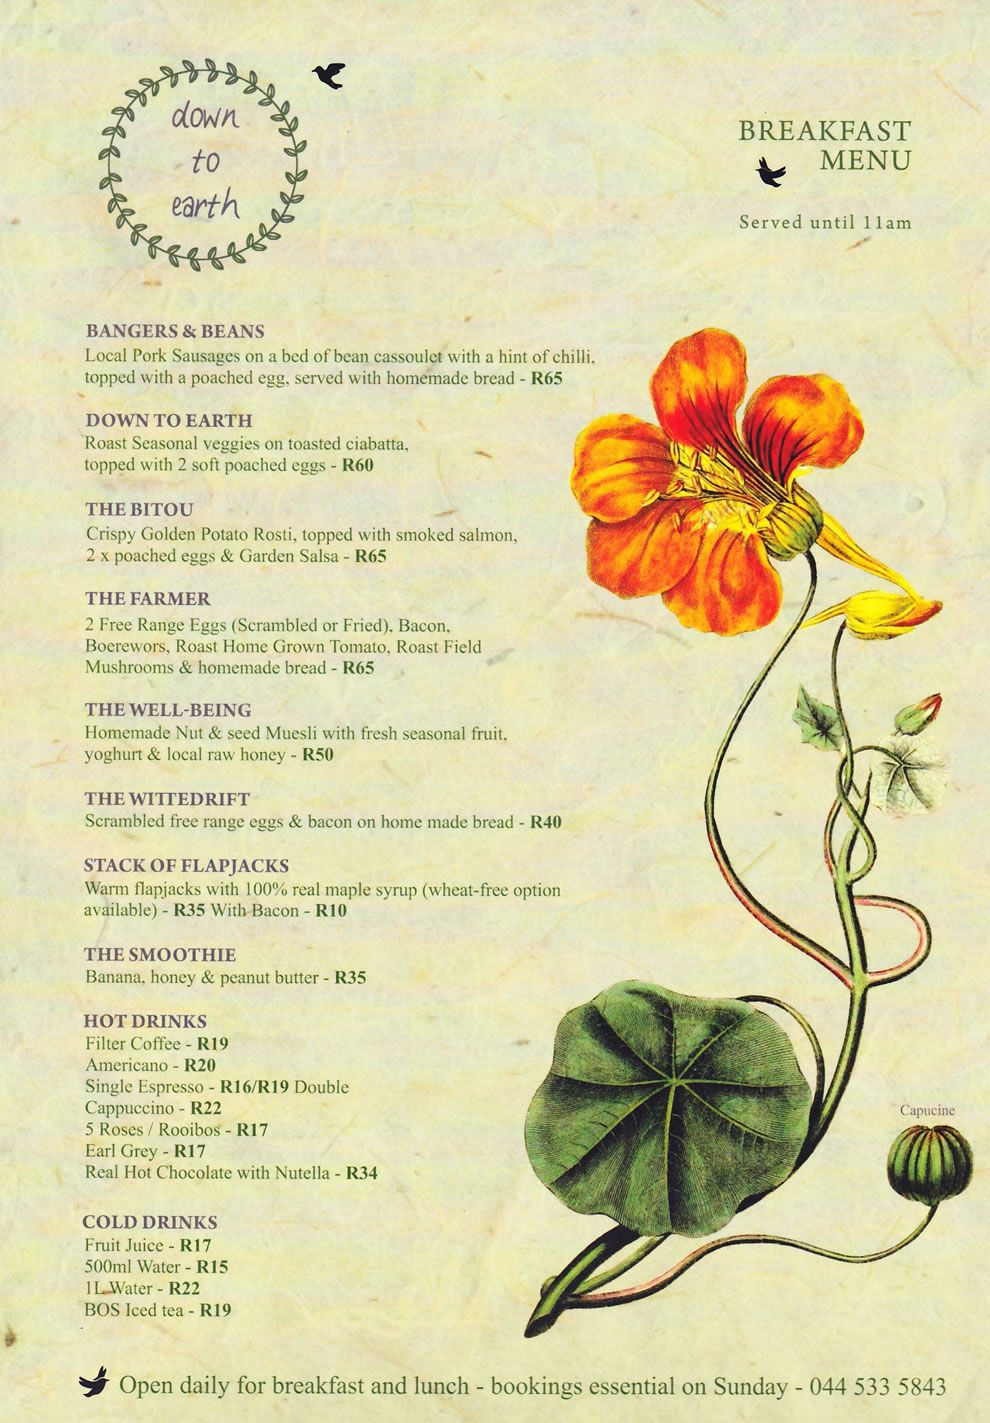 breakfast-menu-july-2016-down-to-earth-990